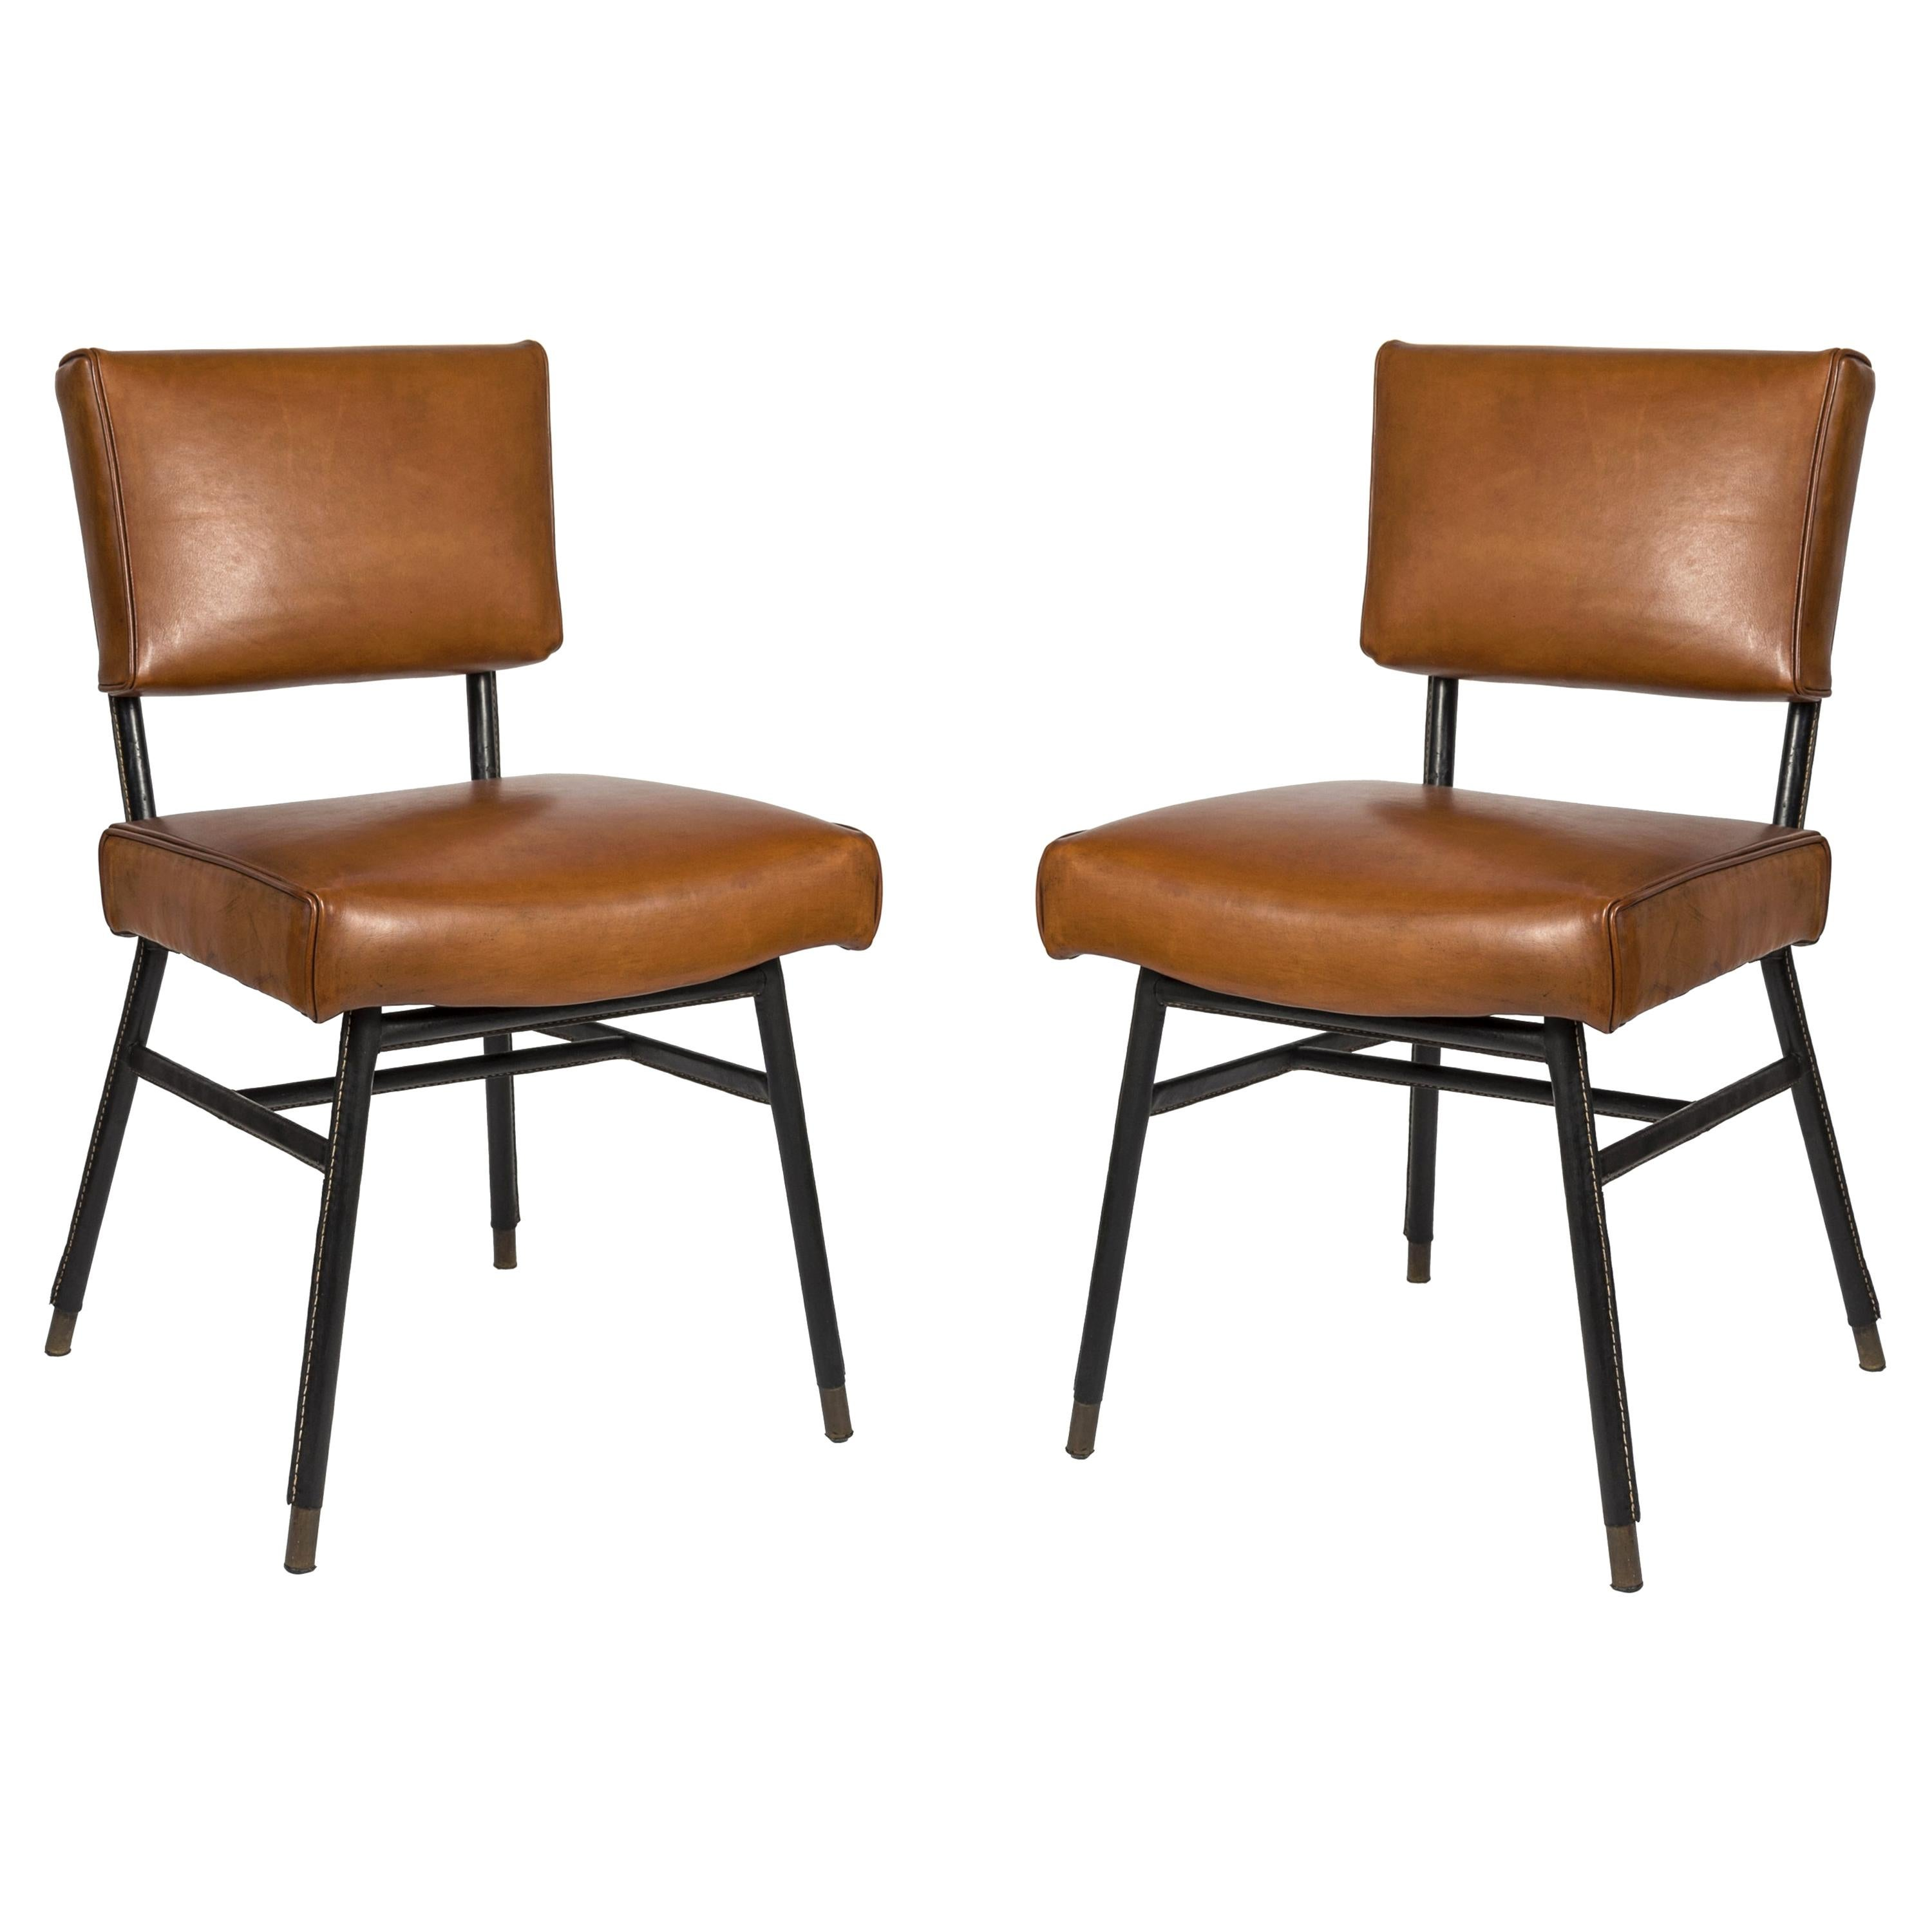 Stitched Leather Pair of Chairs by Jacques Adnet